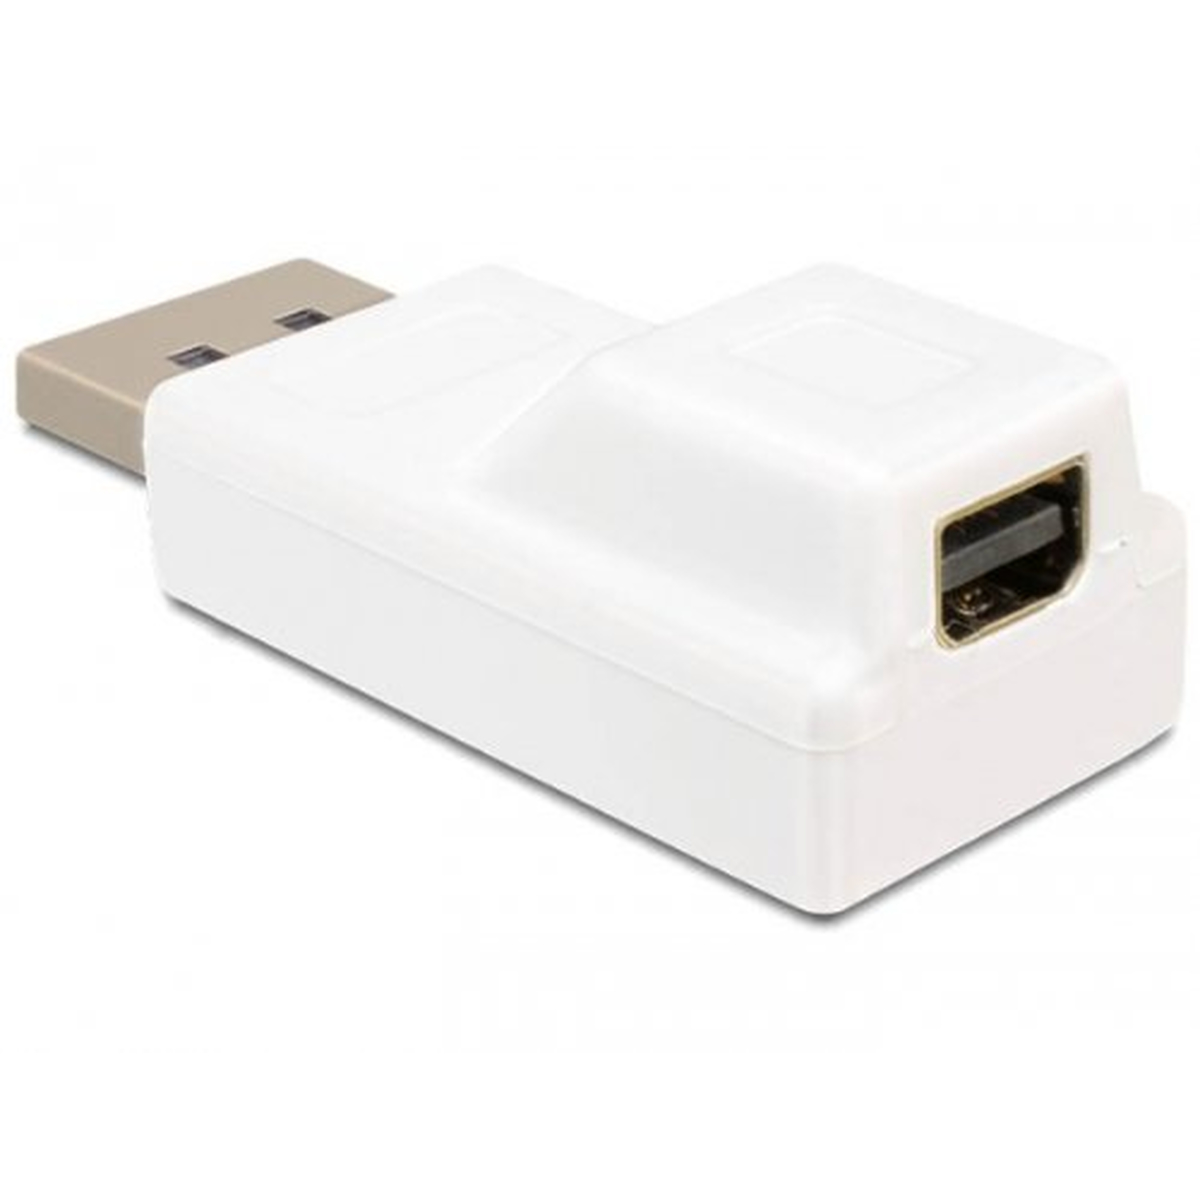 DeLOCK Adapter Displayport 1.2 Stecker > Displayport mini Bu